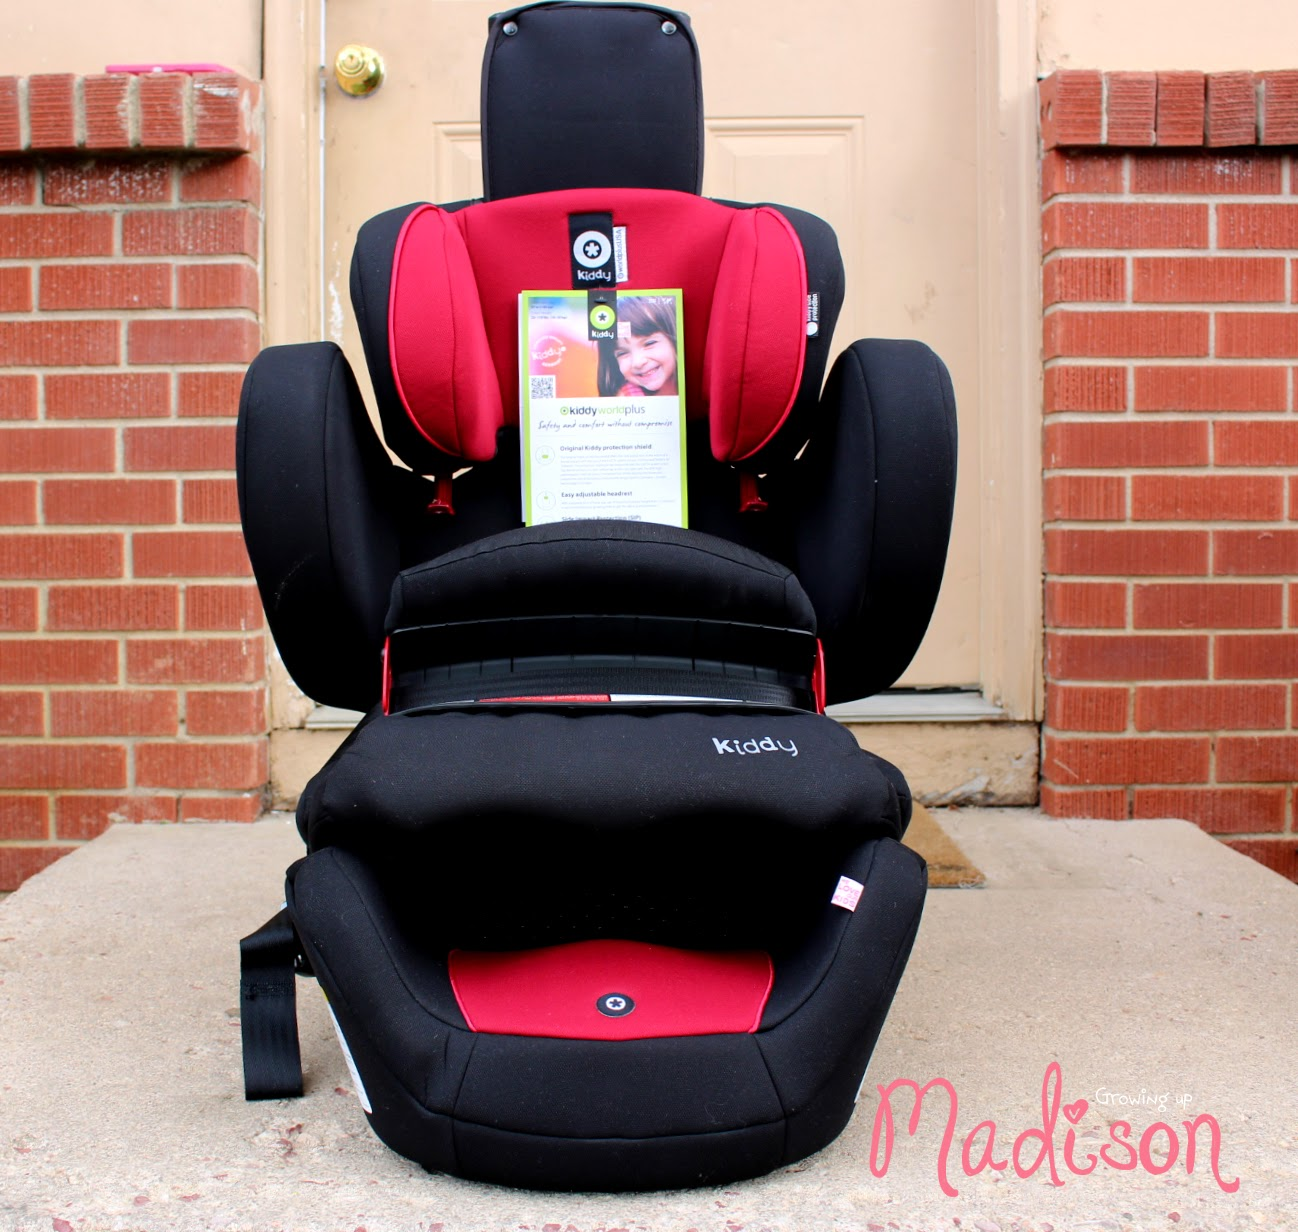 The Kiddy World Plus Is A German Designed And Engineered Forward Facing Combination Child Restraint Seat Which Means That Youre Only Able To Use This Once